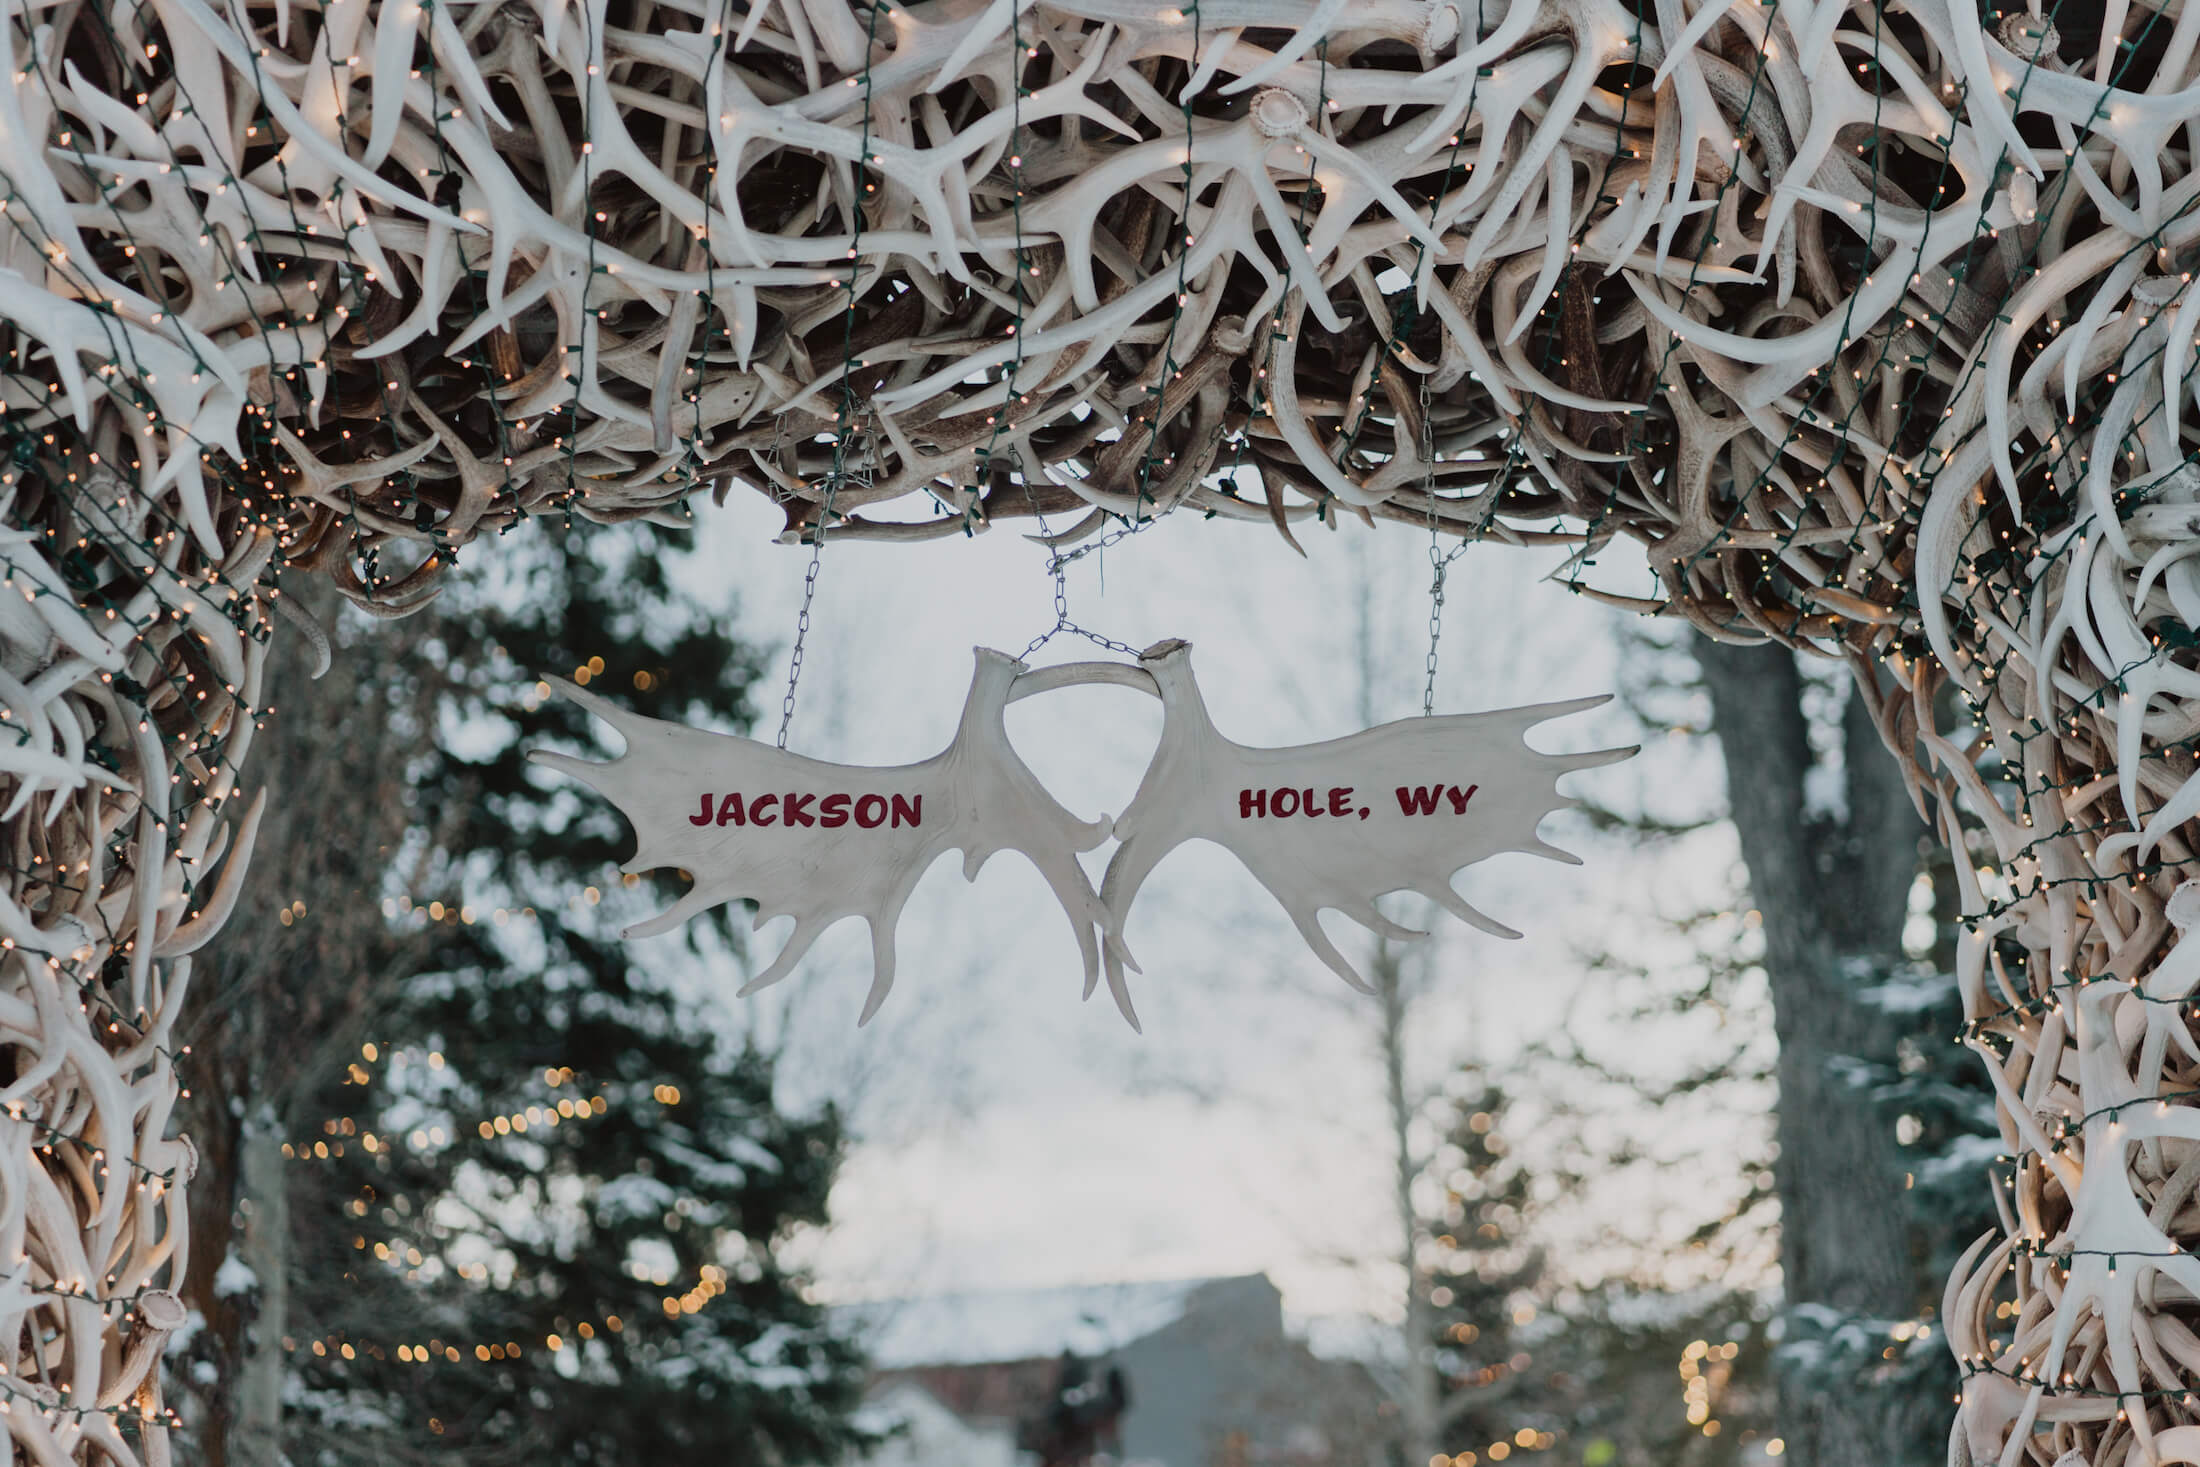 picture of antlers in town square in Jackson Hole, Wyoming